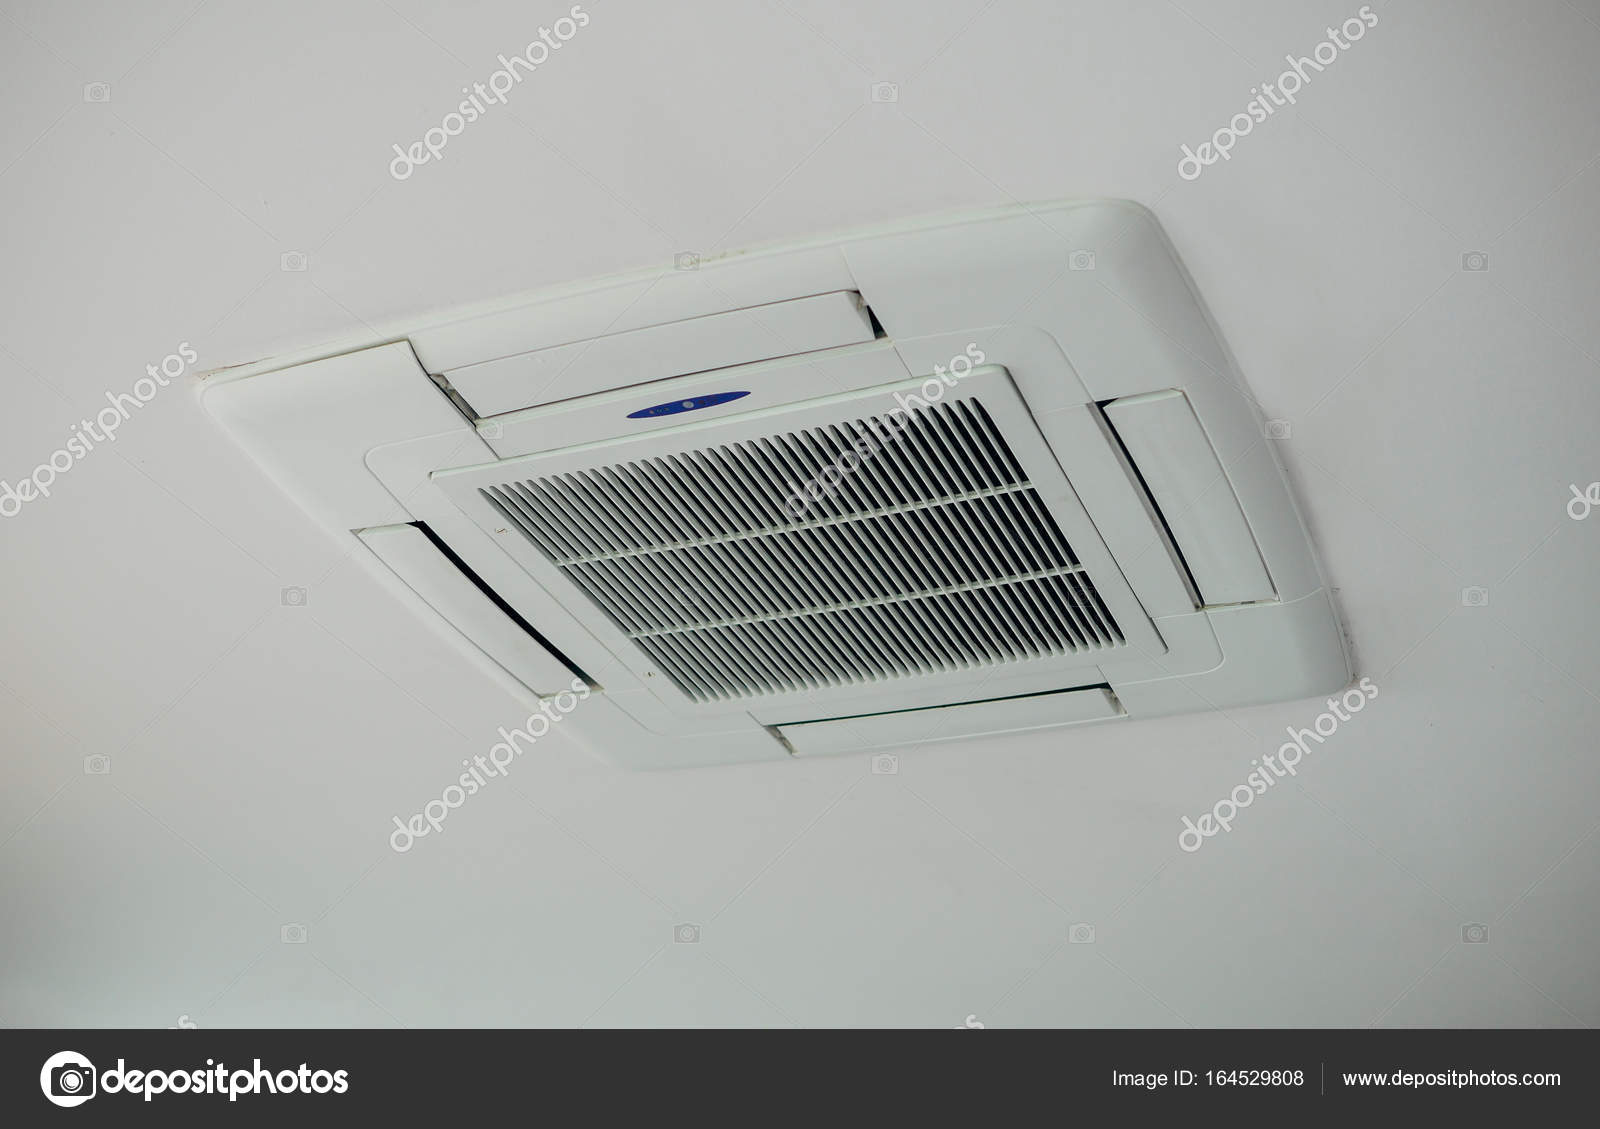 Ceiling mounted cassette type air conditioner — Stock